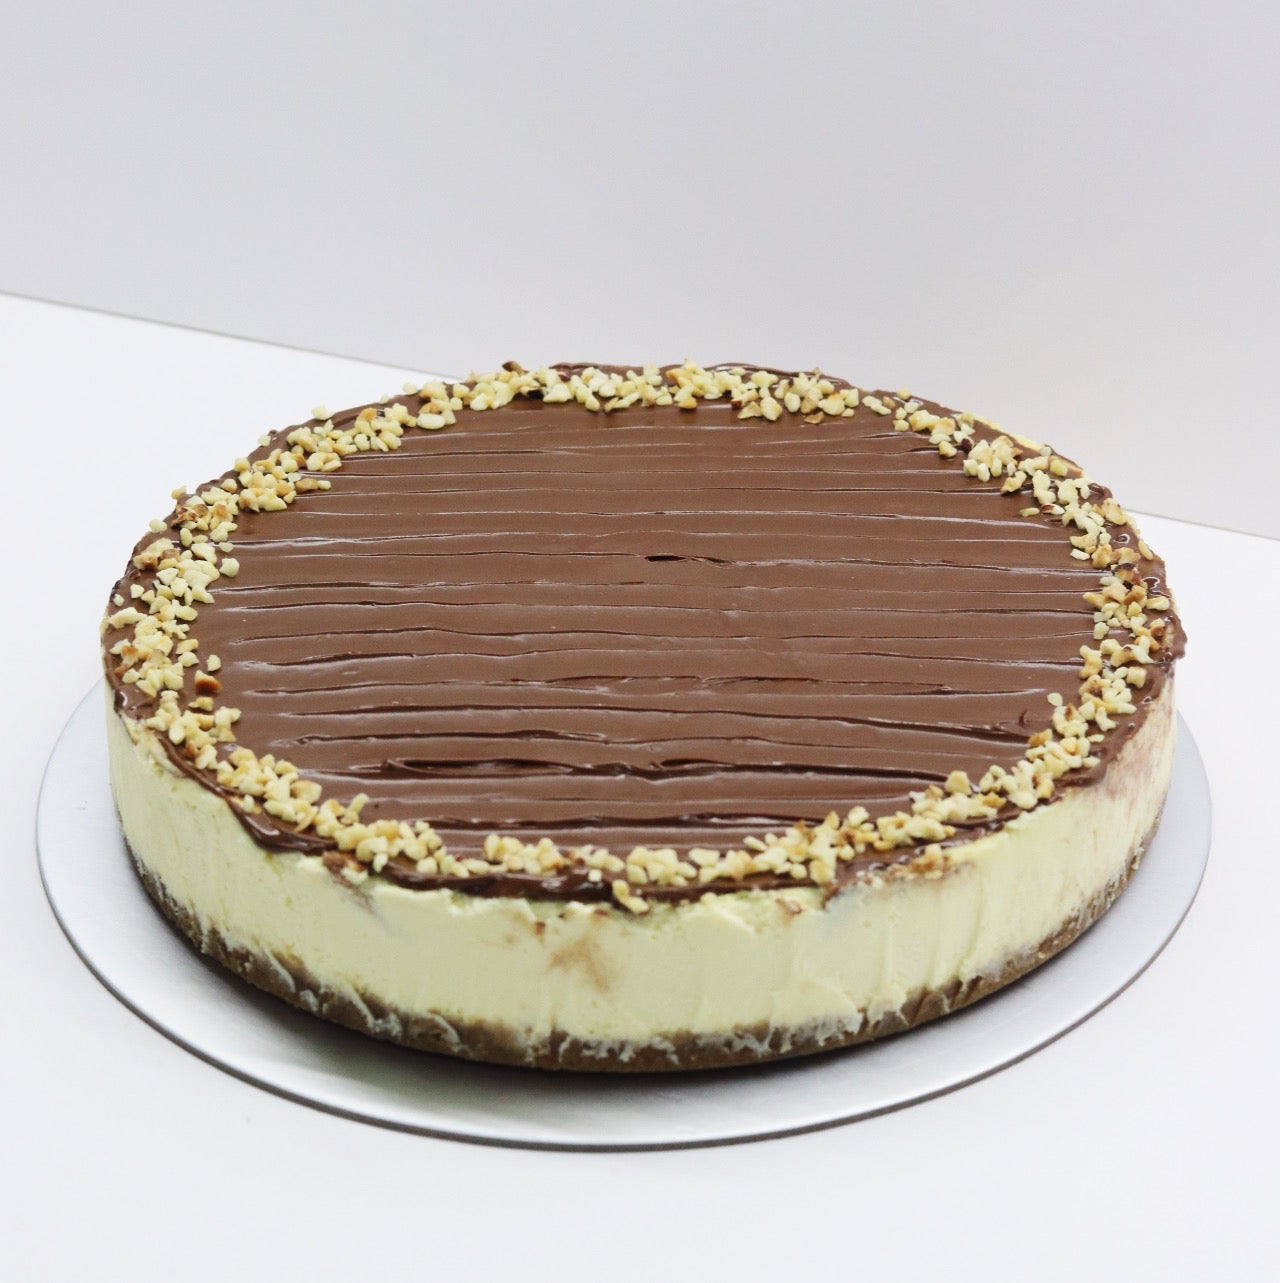 Nutella Cheesecake - Cake Delights Bakery